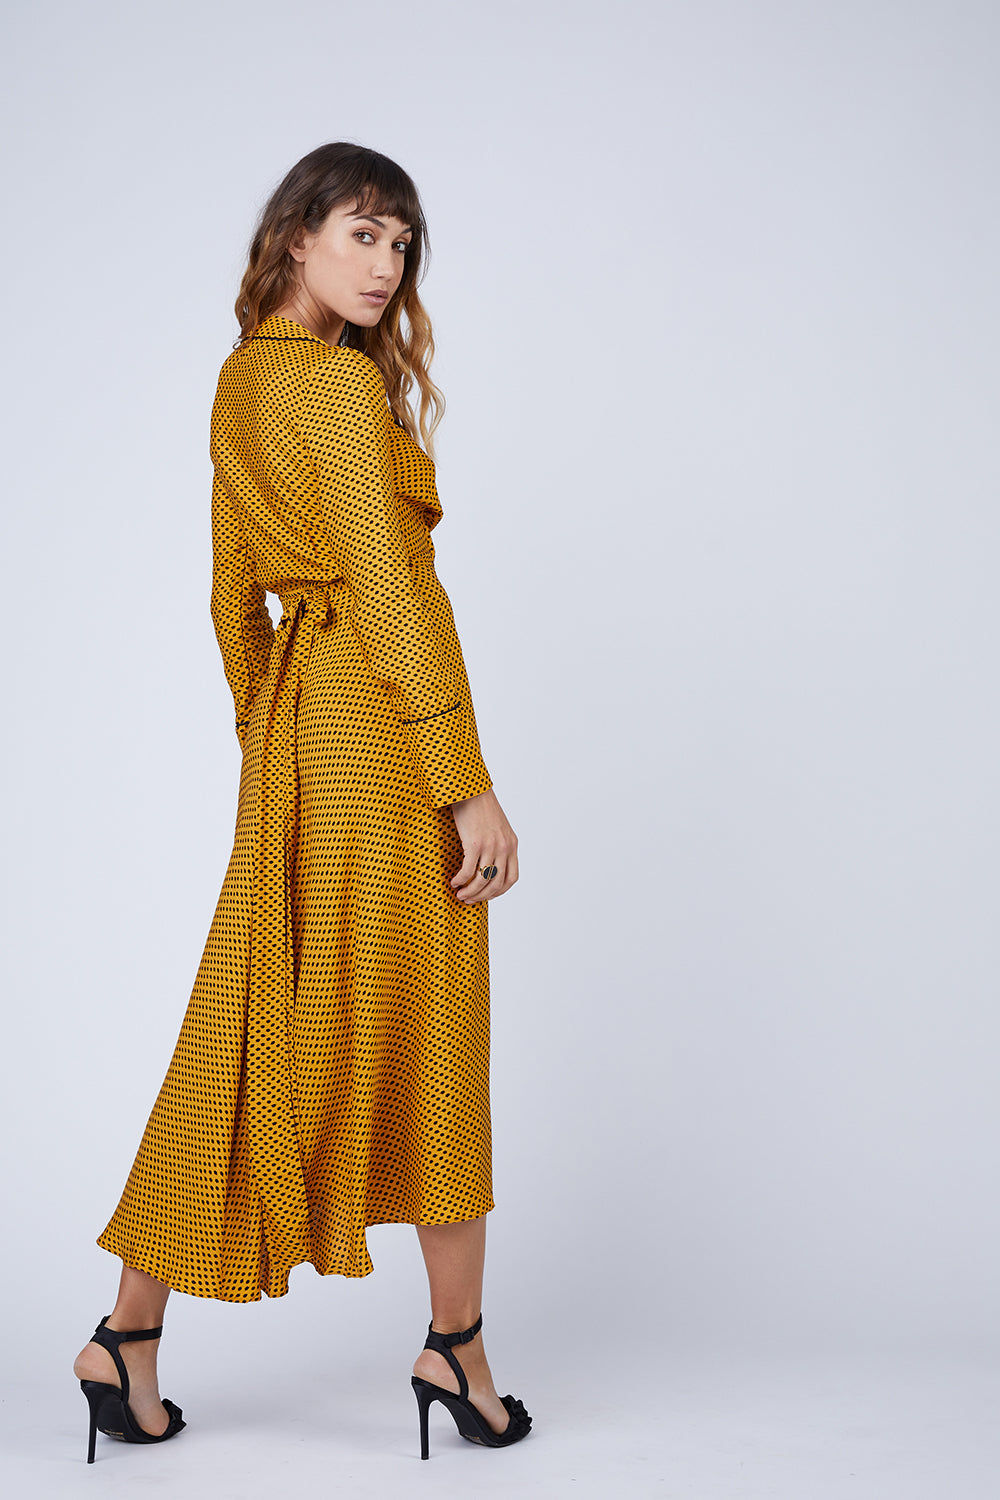 BEC & BRIDGE Sun Valley Midi Dress - Spot Print Dress | Spot Print| Bec & Bridge Sun Valley Midi Dress - Spot Print. Features:  Wrap dress with matching tie at waist Midi length Relaxed fit 100% Viscose Made in Australia Back View